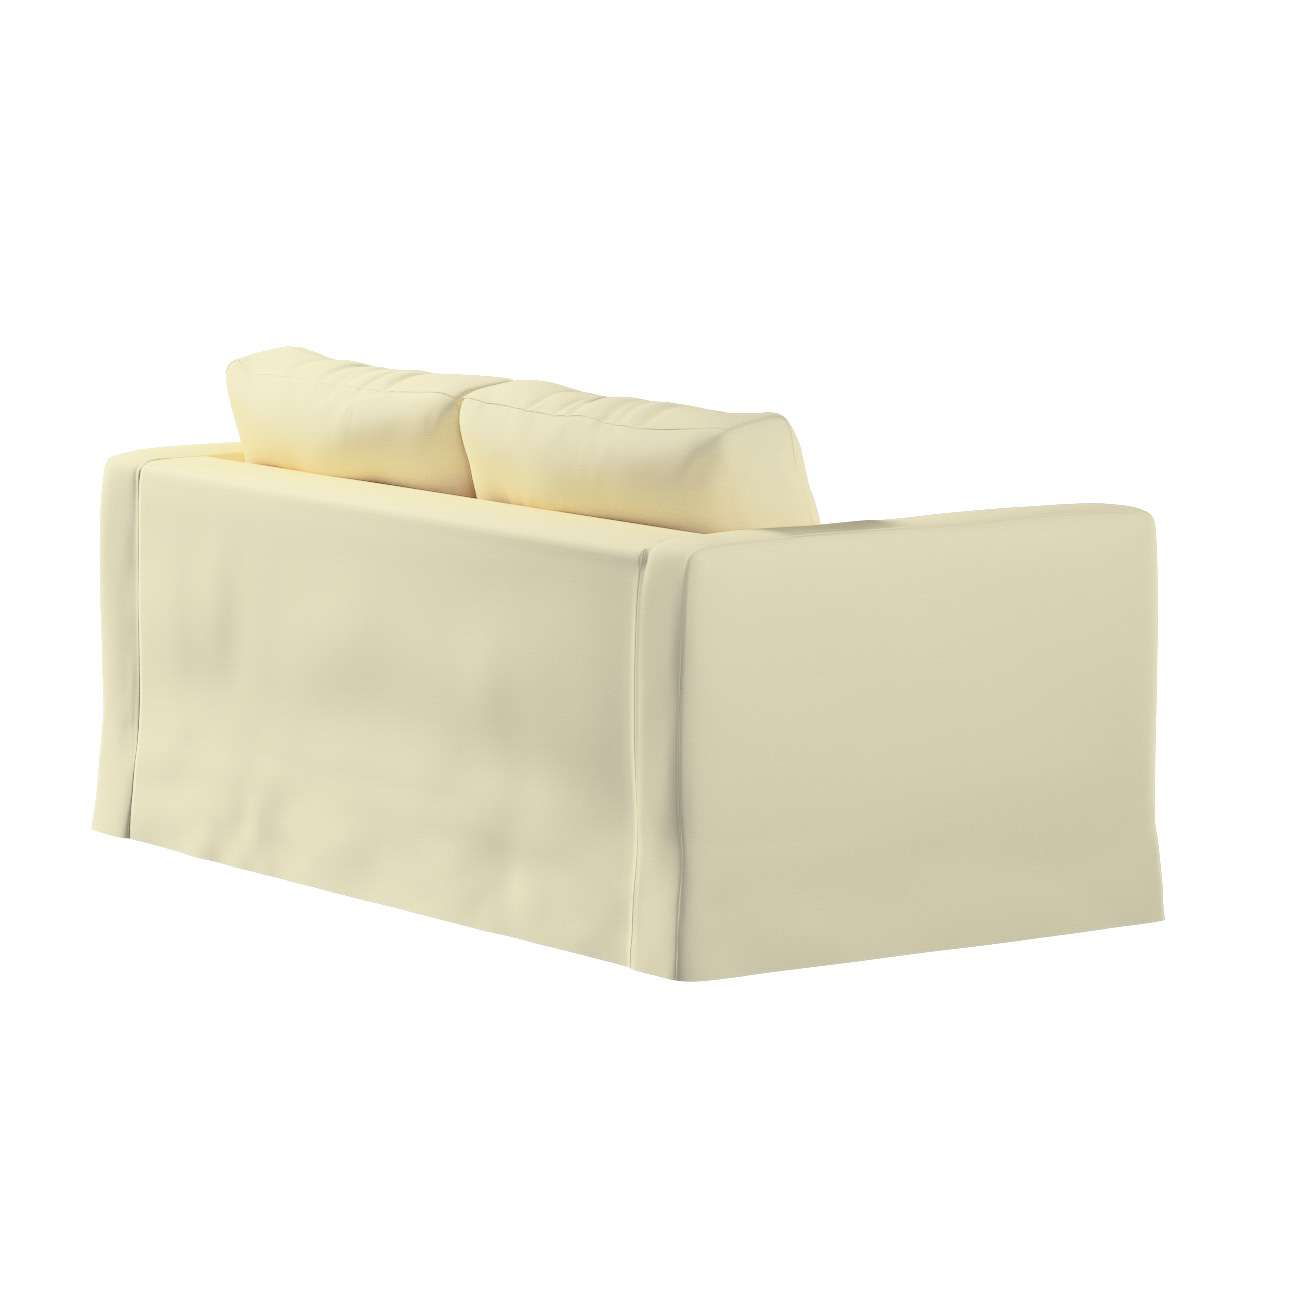 Floor length Karlstad 2-seater sofa cover in collection Panama Cotton, fabric: 702-29